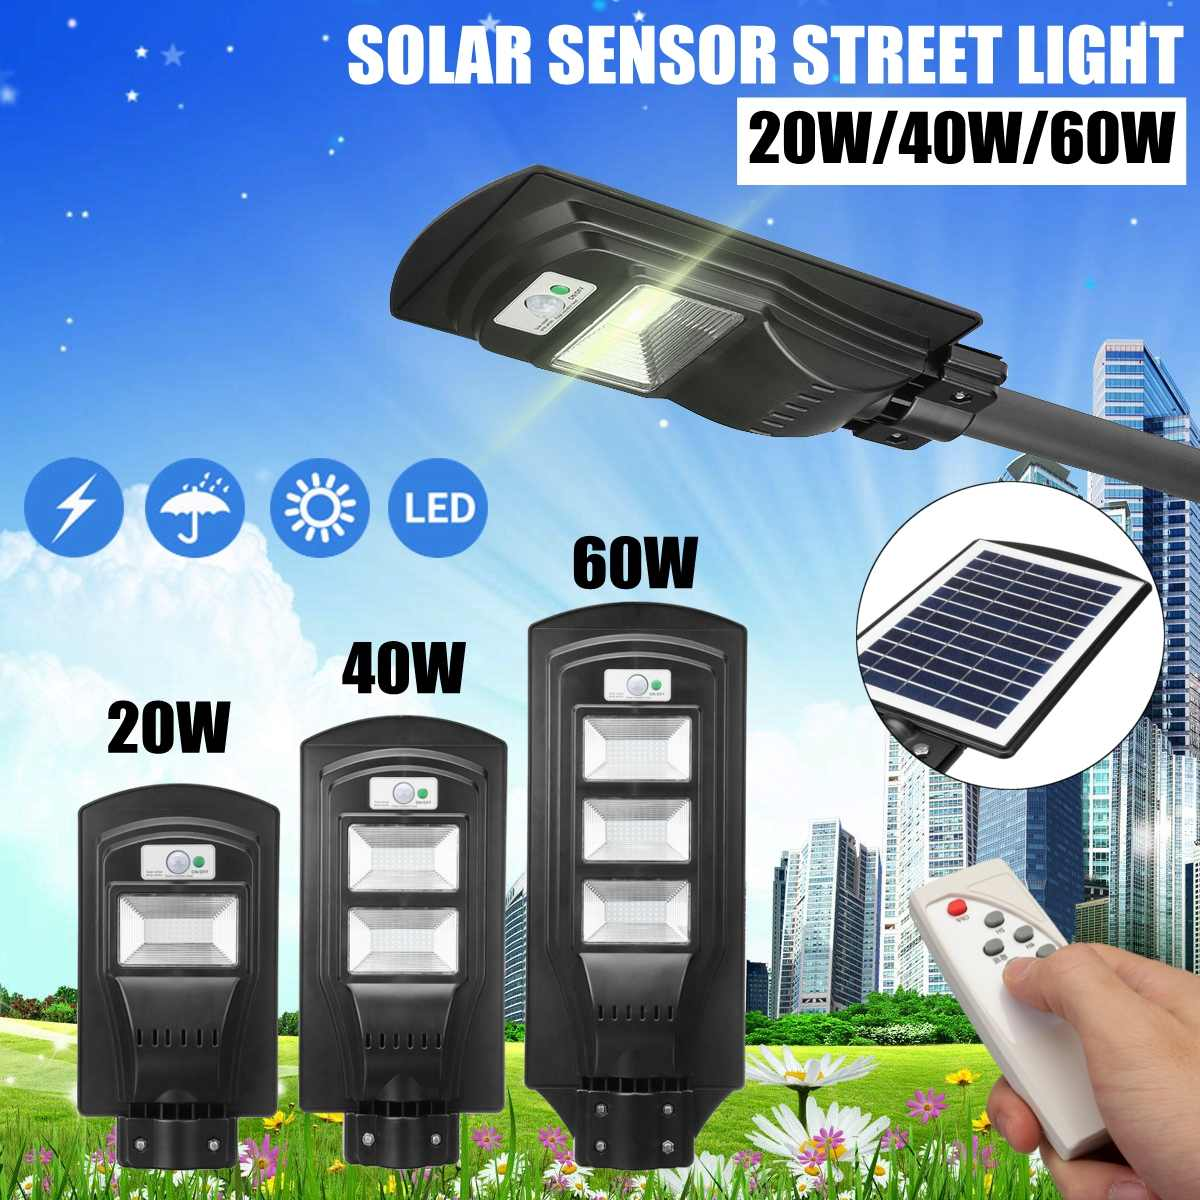 20-90W Radar motion 2 In 1 Constantly bright & Induction Solar Sensor Light Remote Control Outdoor LED Wall Lamp Street Light20-90W Radar motion 2 In 1 Constantly bright & Induction Solar Sensor Light Remote Control Outdoor LED Wall Lamp Street Light